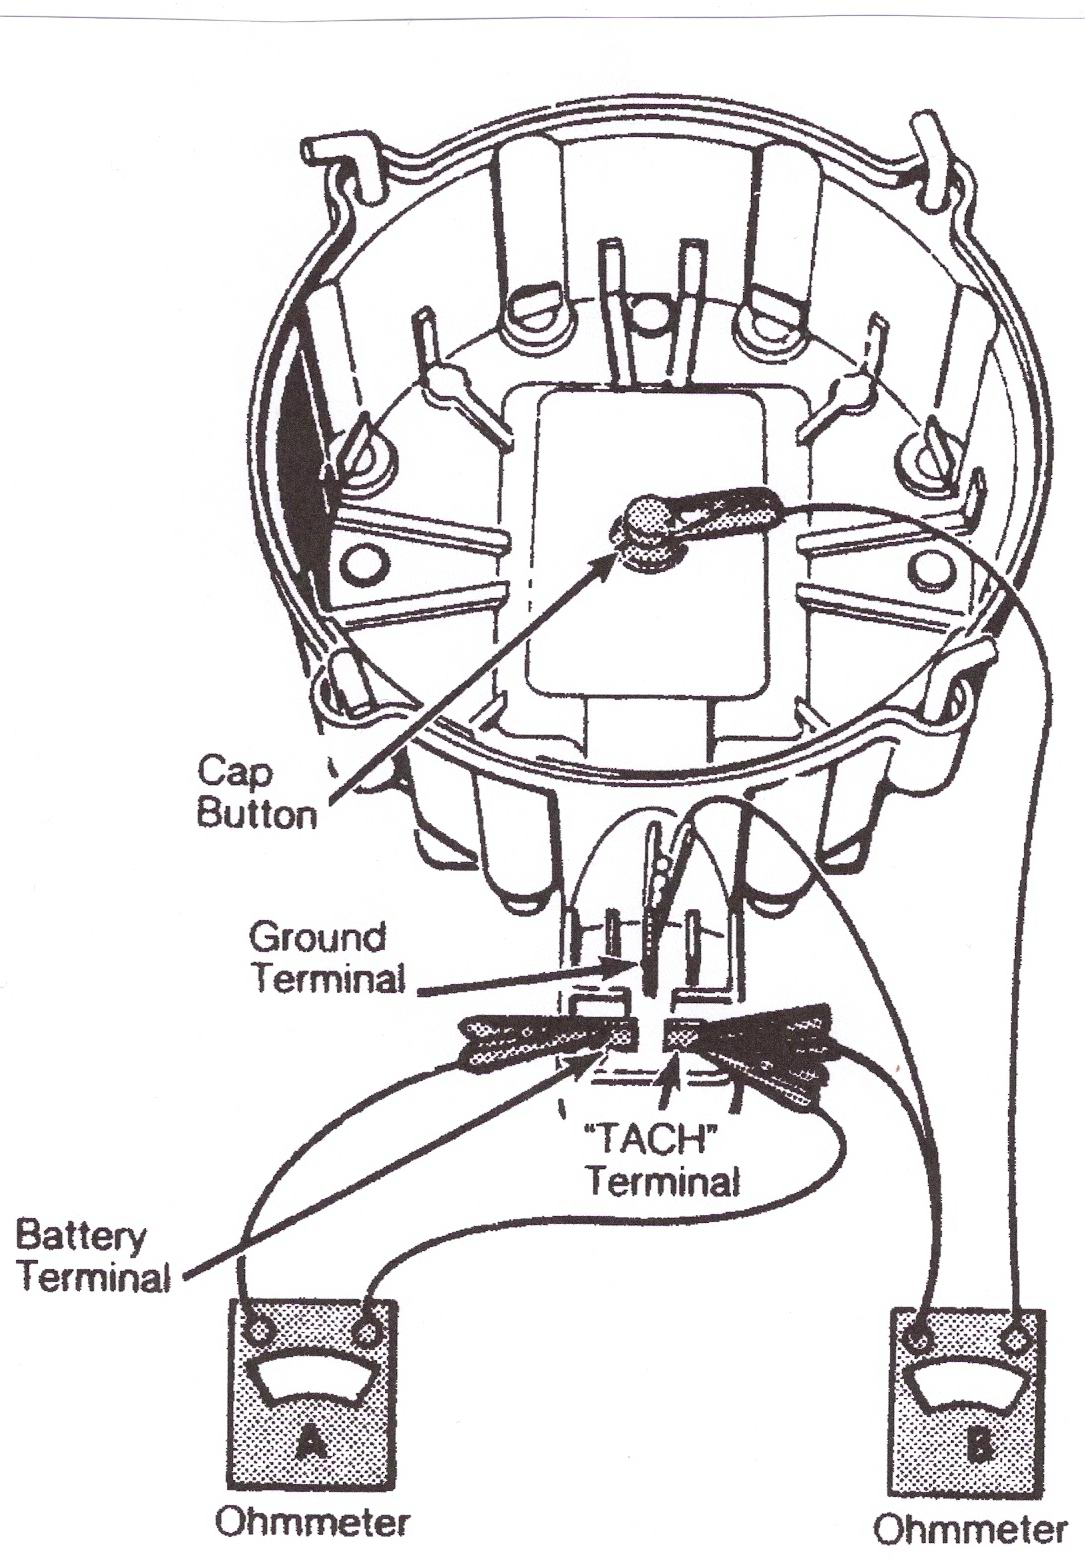 5 Pin Gm Hei Ignition Module Wiring Diagram | Wiring Diagram Database